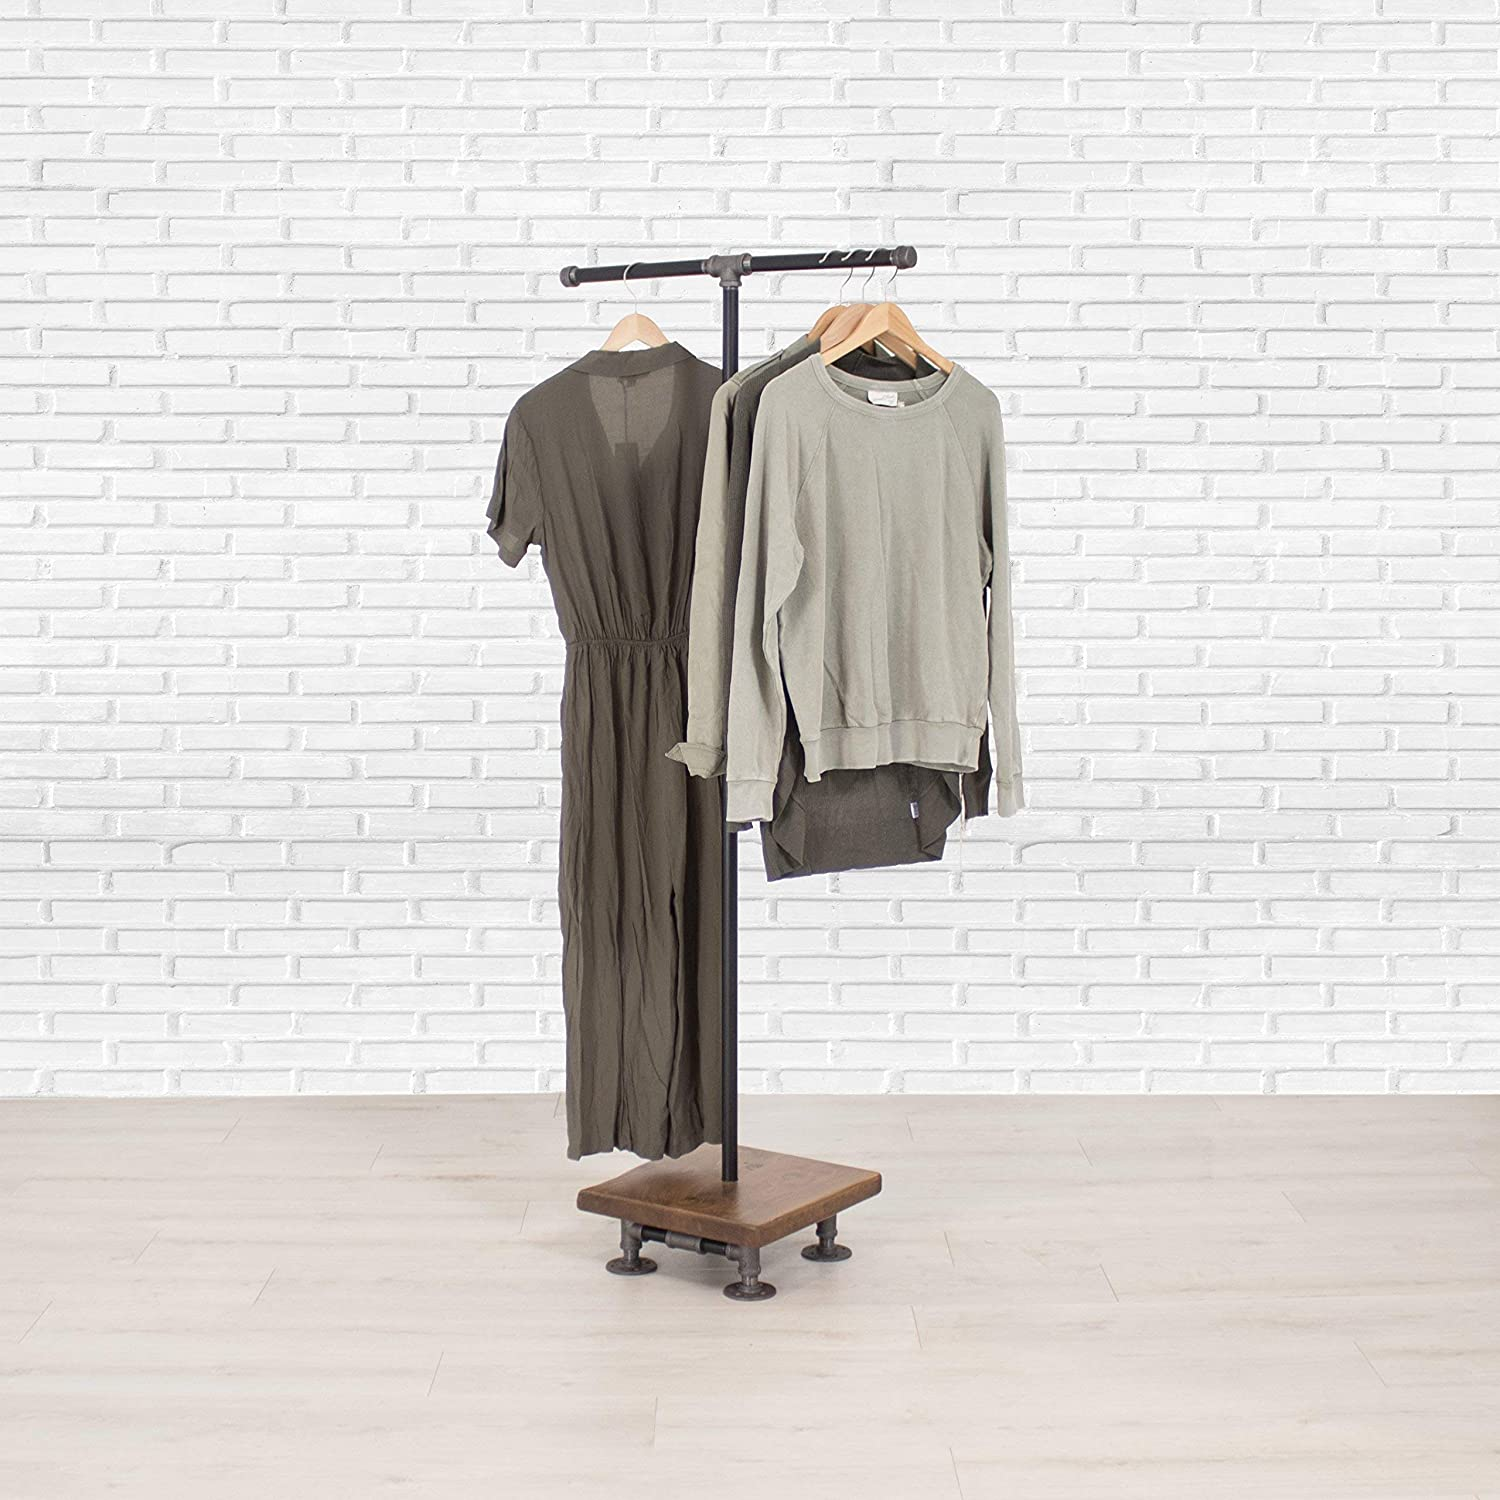 Clothing Storage and Display Clothing Rack Industrial Pipe and Wood Clothes Rack 2-Way Garment Rack Closet Organizer Wood Shelving